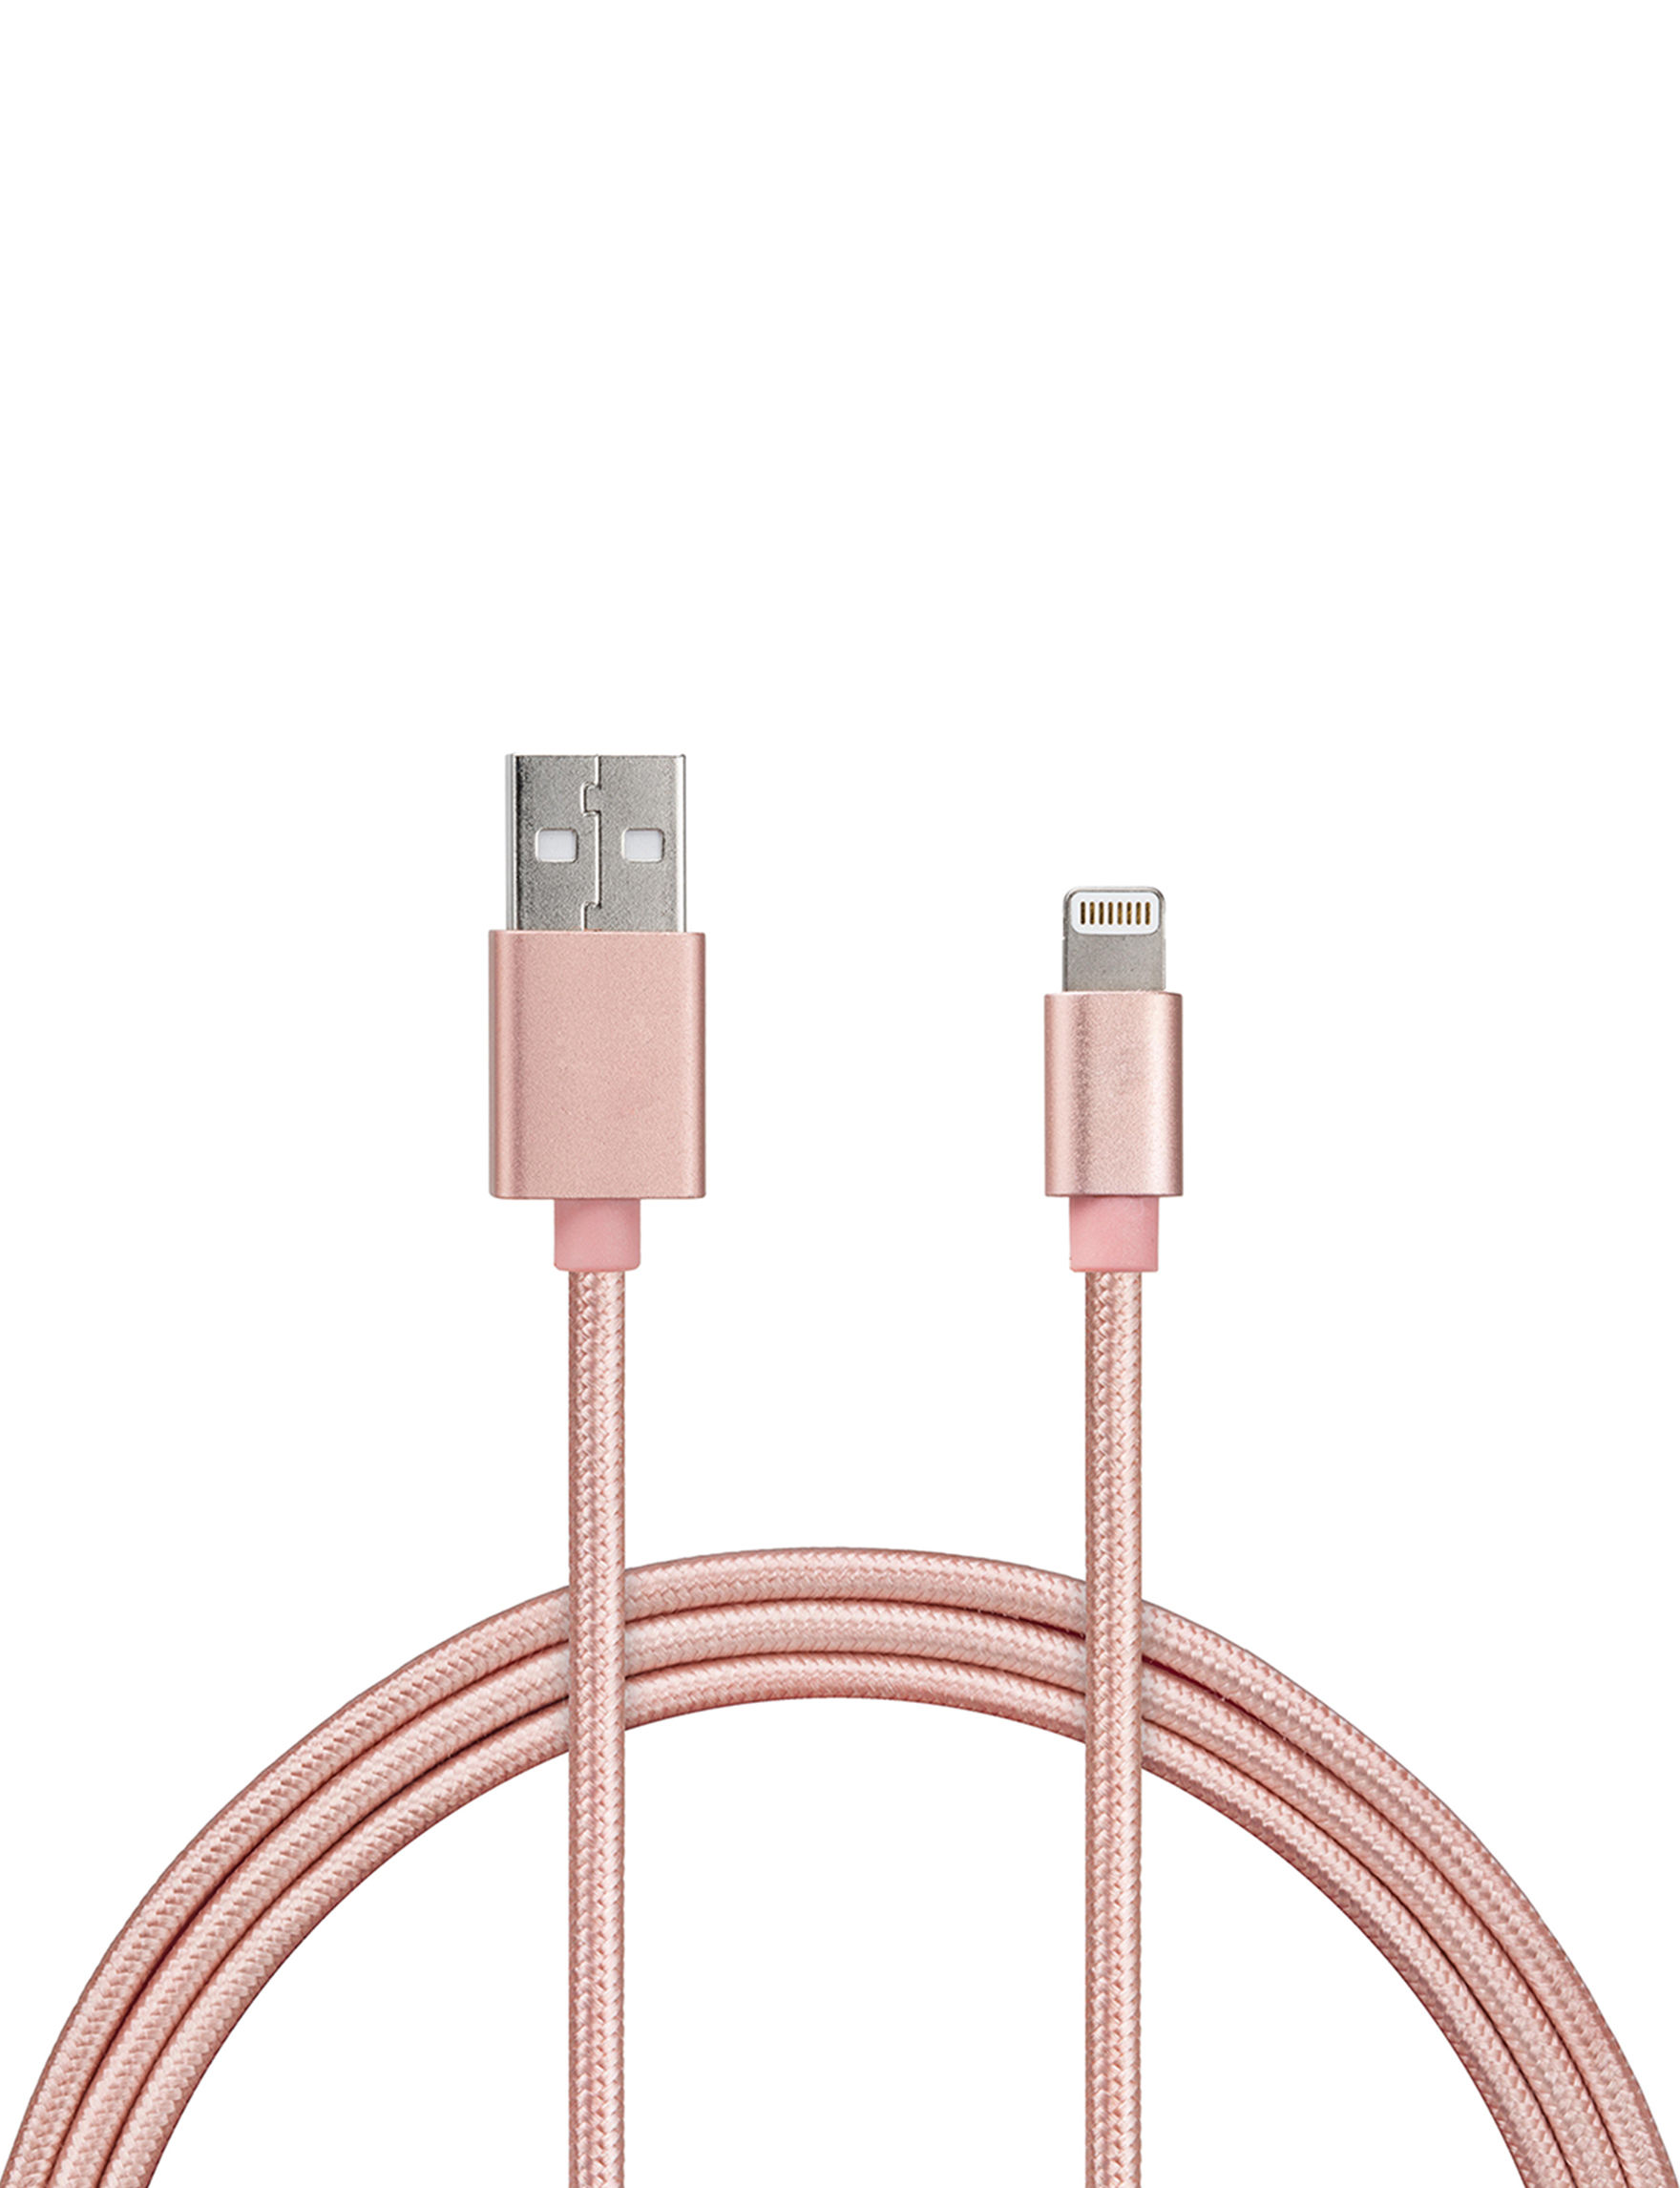 Lifeworks Technology Groups Pink Cables & Outlets Tech Accessories